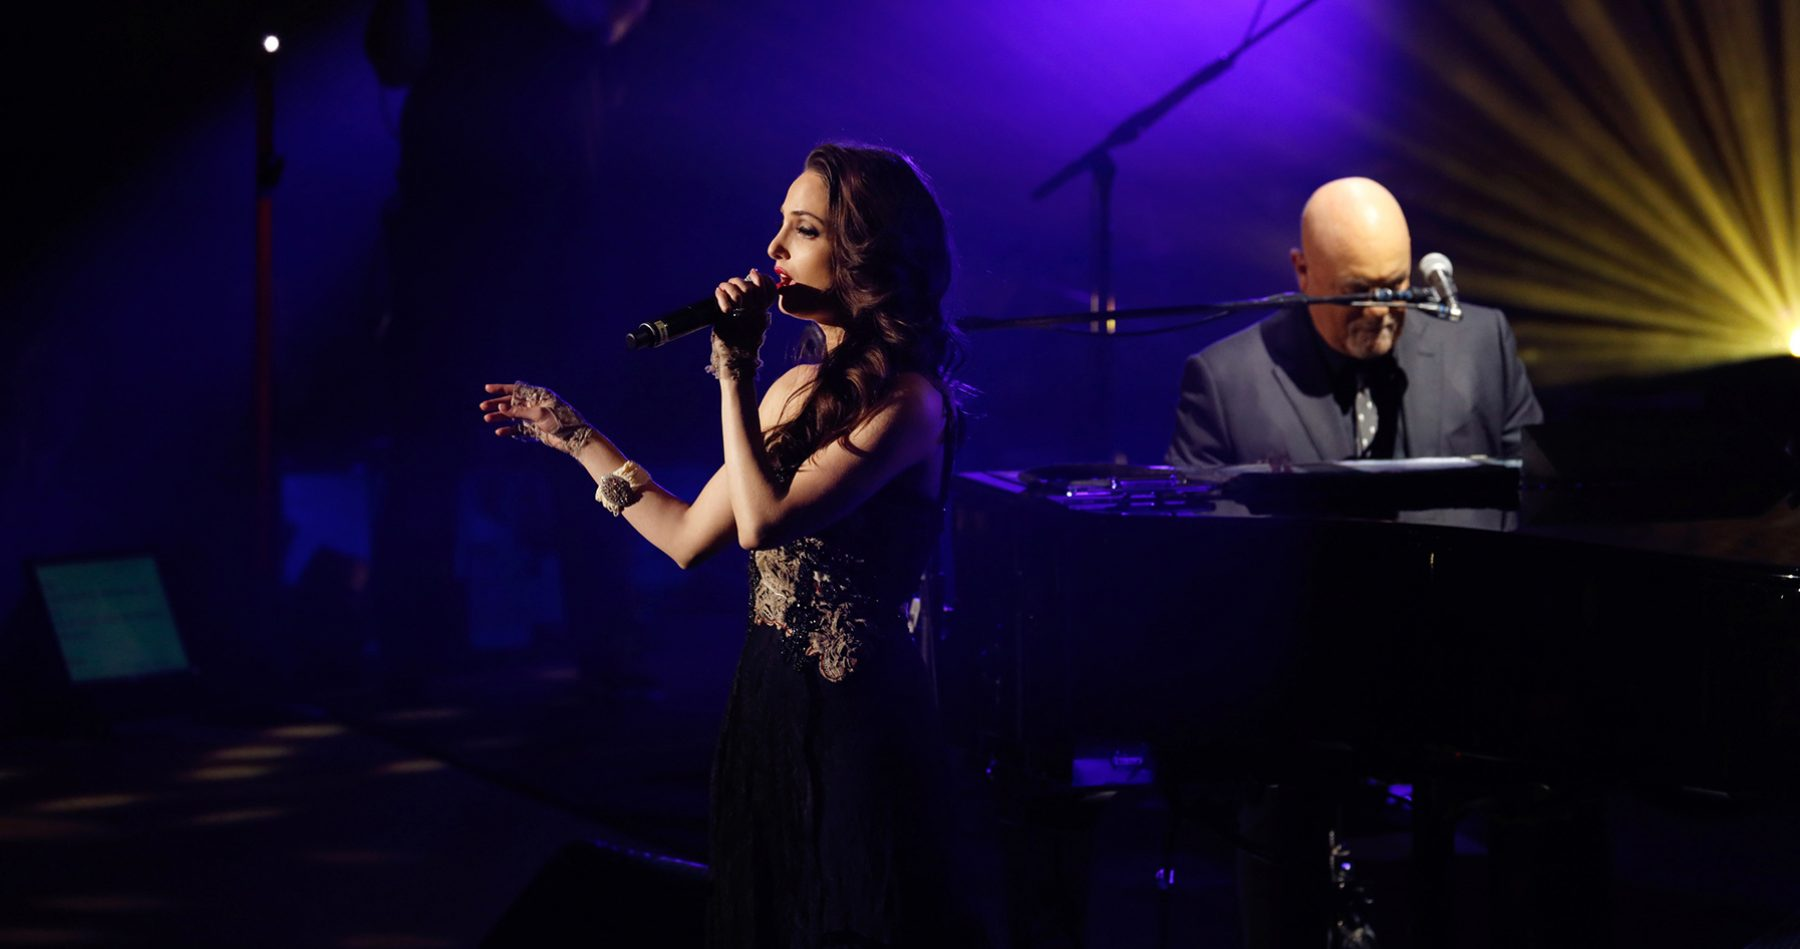 Alexa Ray Joel performs New York State Of Mind with father Billy Joel during his Valentine's Day concert at Madison Square Garden February 14, 2019